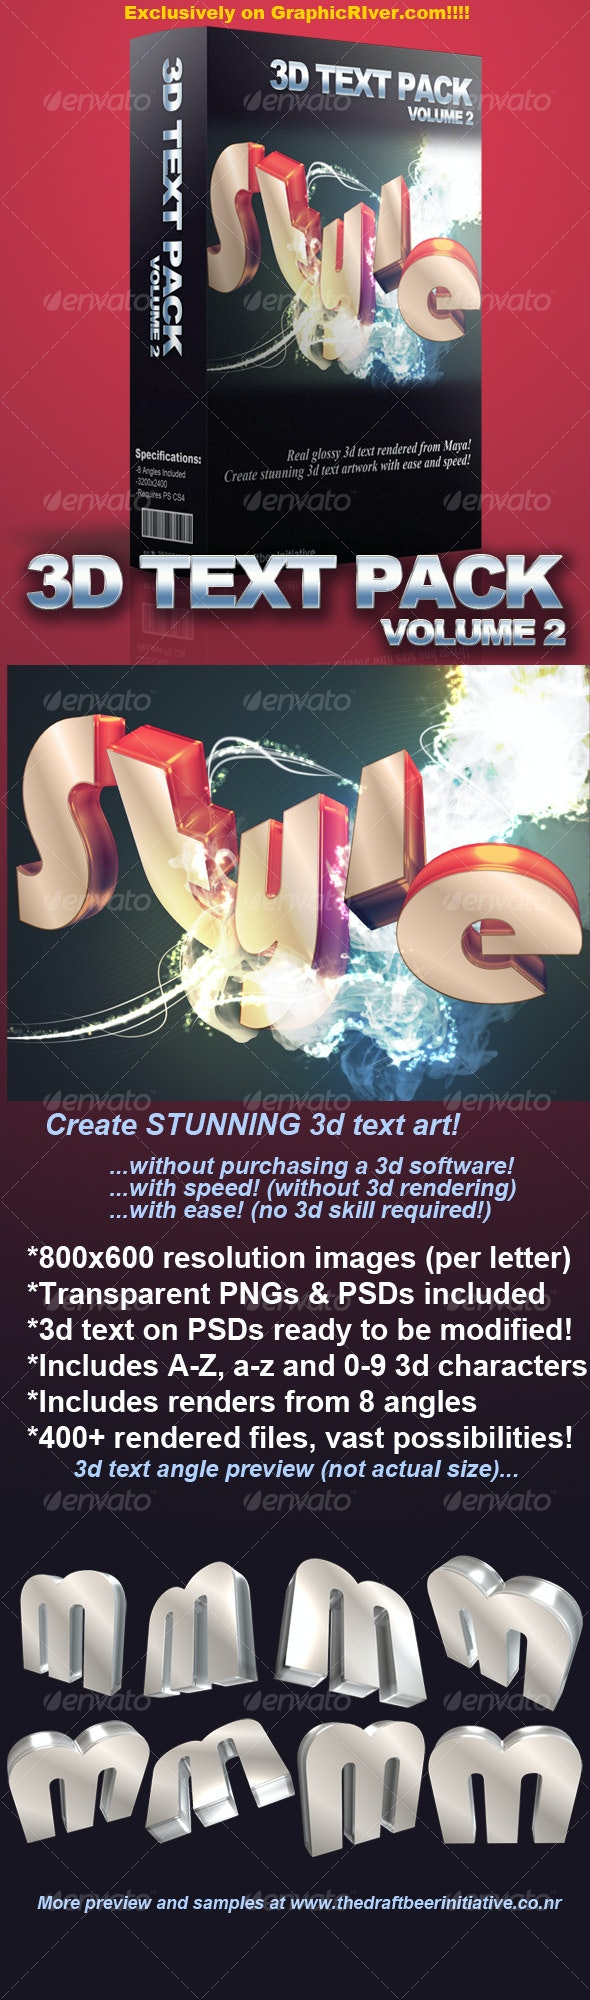 Glossy 3D Text Pack Volume 2 - 3D Backgrounds